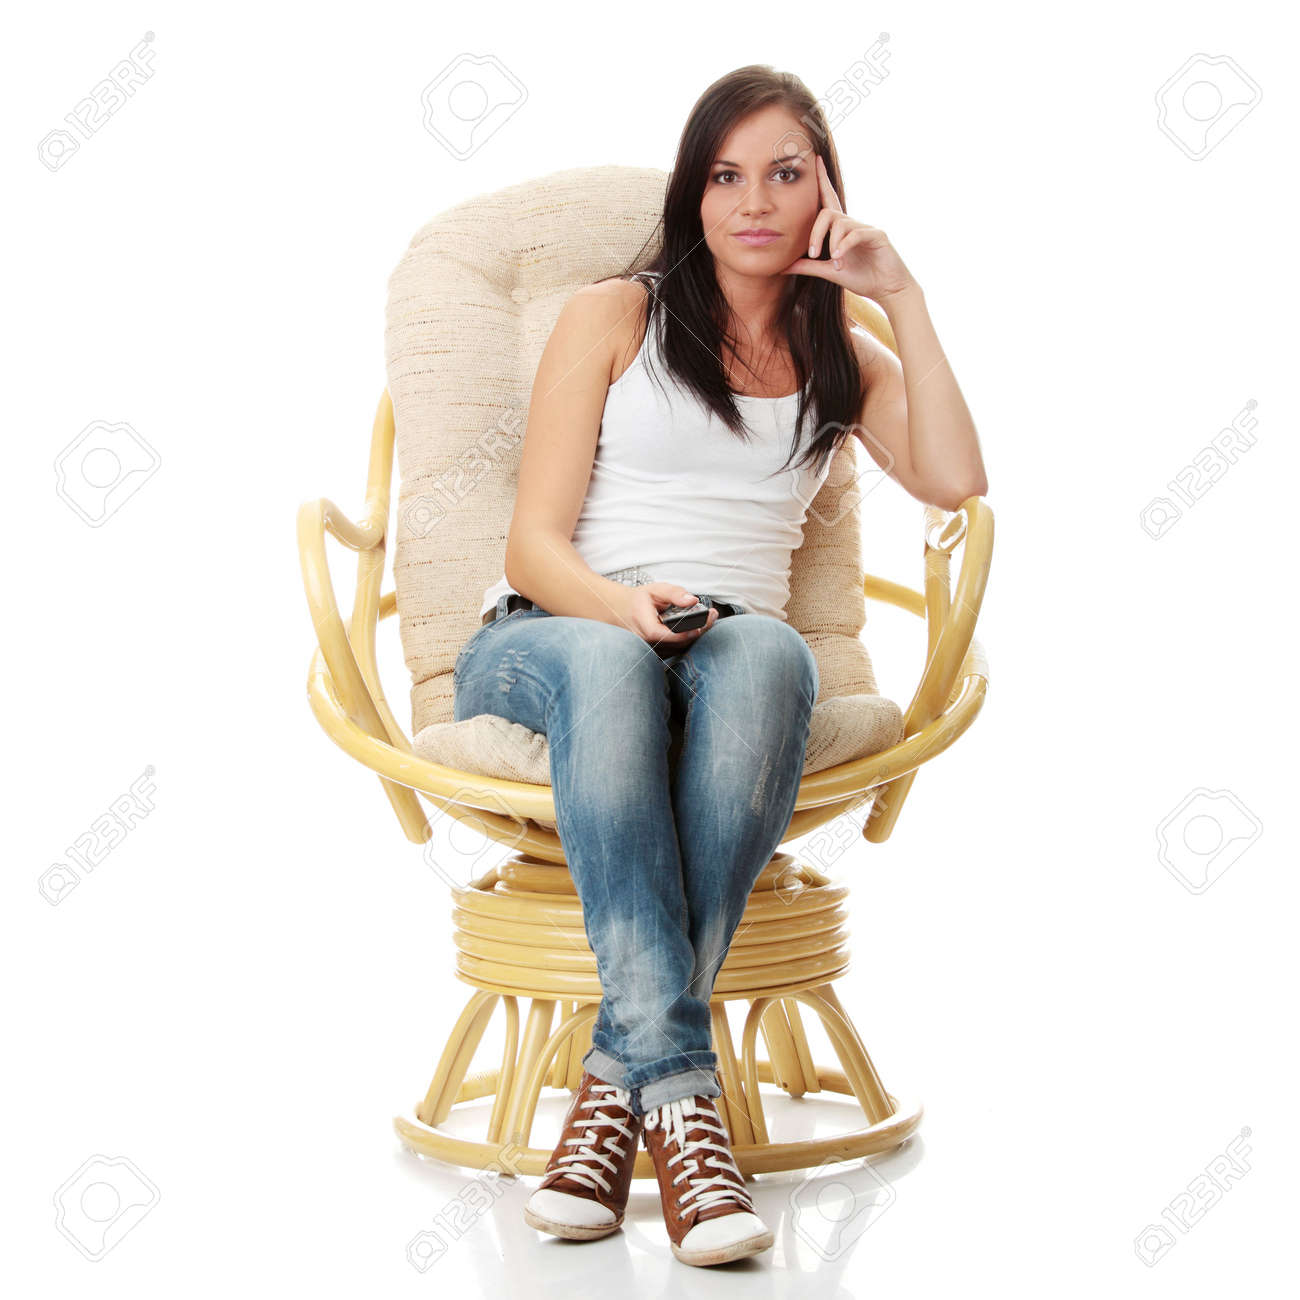 Young woman watching TV with remote control in hand while sitting on armchair isolated - view from TV - Change the channel concept Stock Photo - 5930233